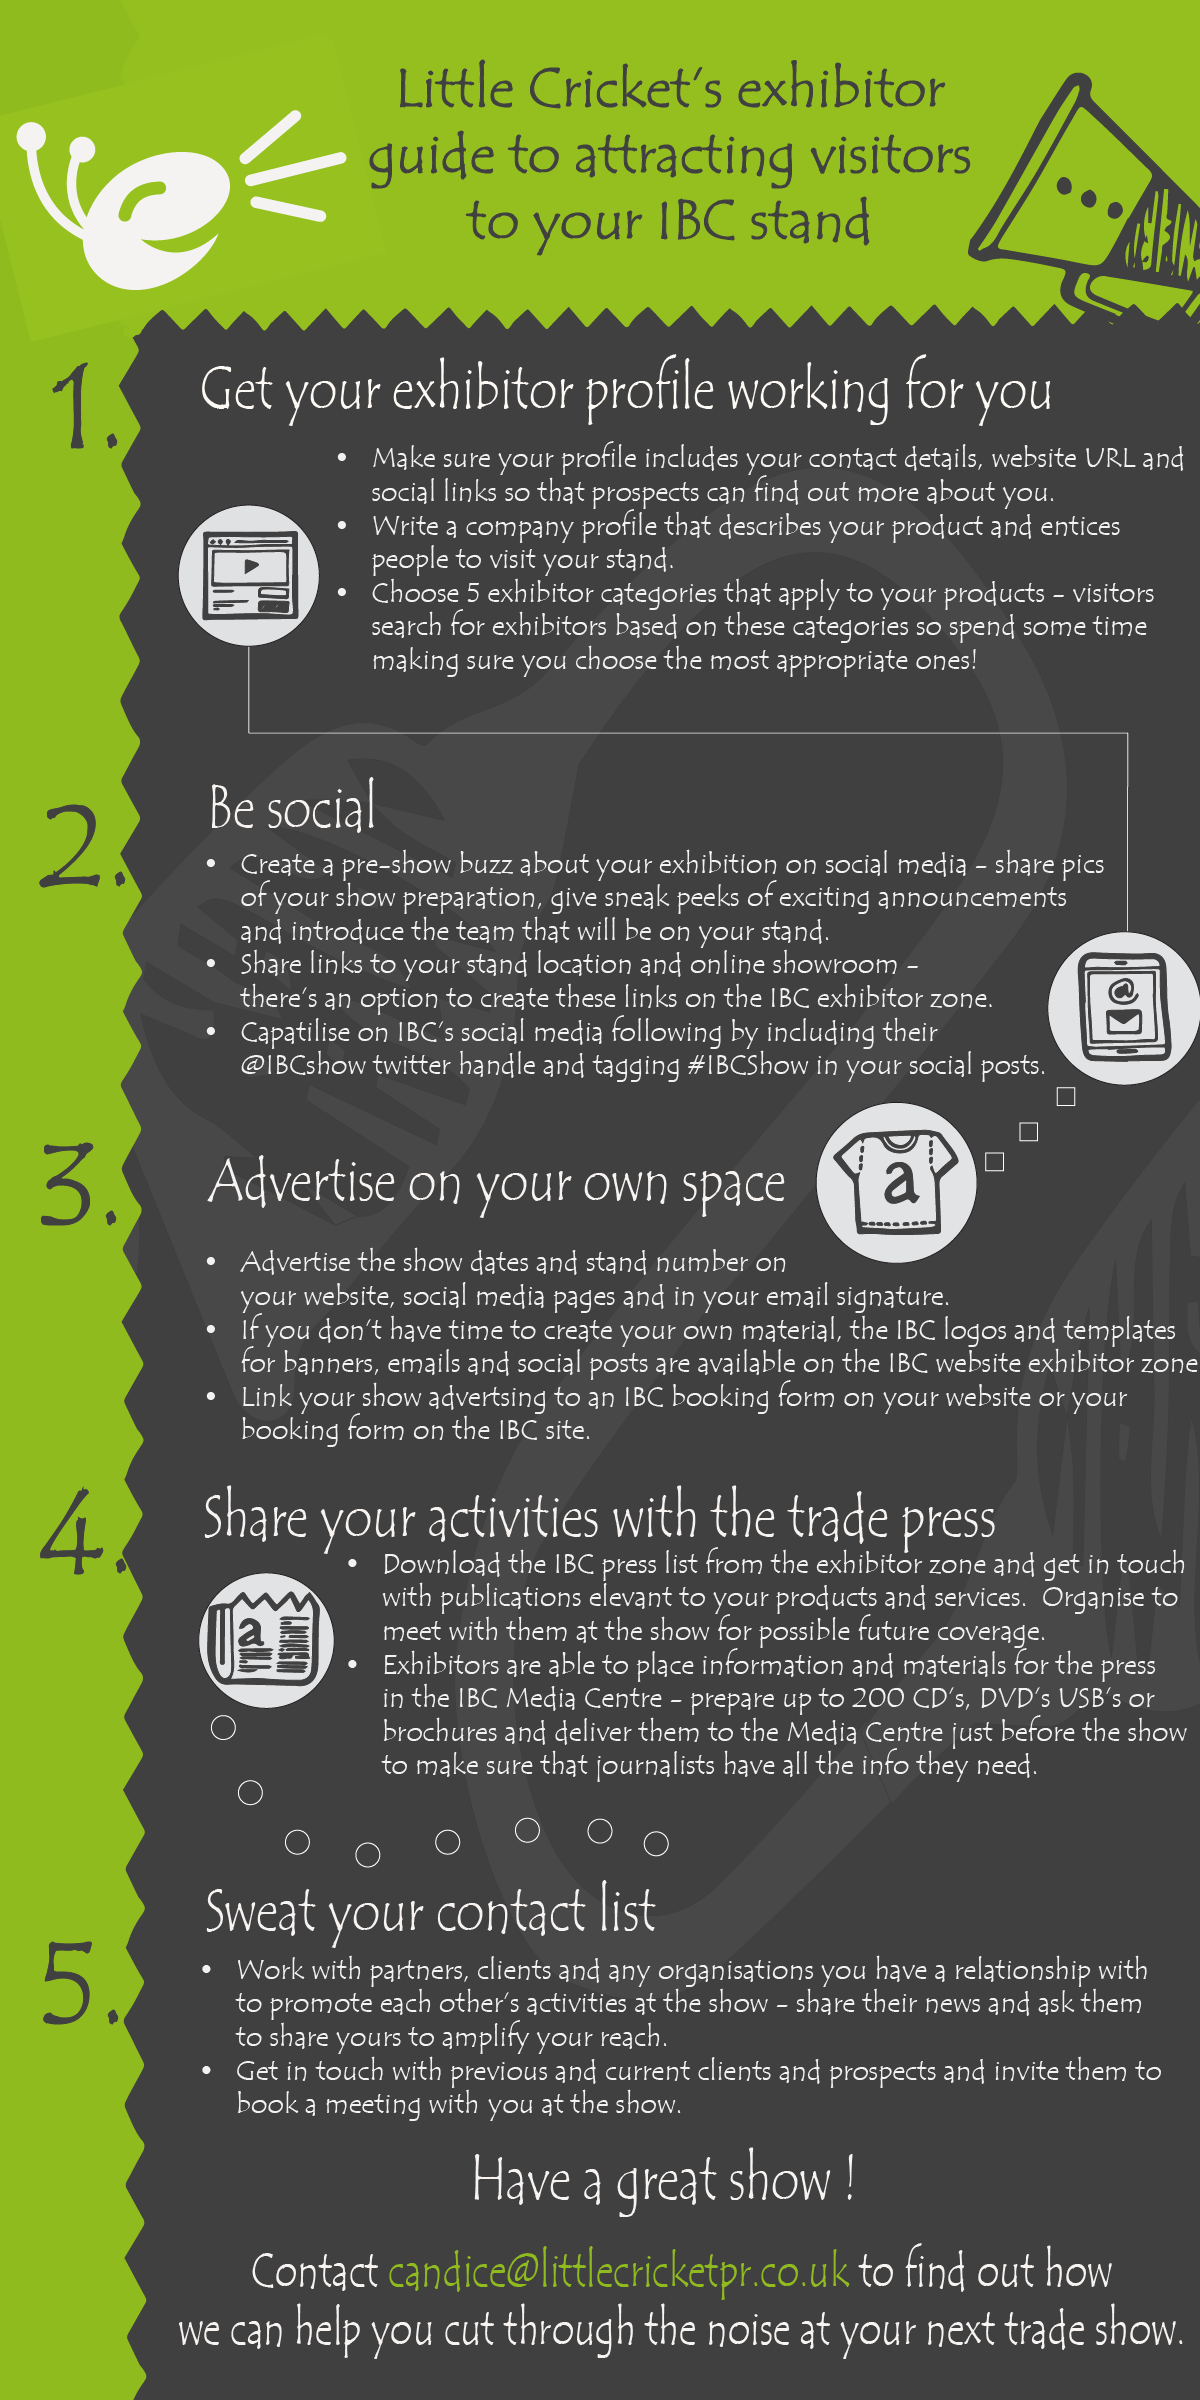 IBC trade show marketing tips infographic